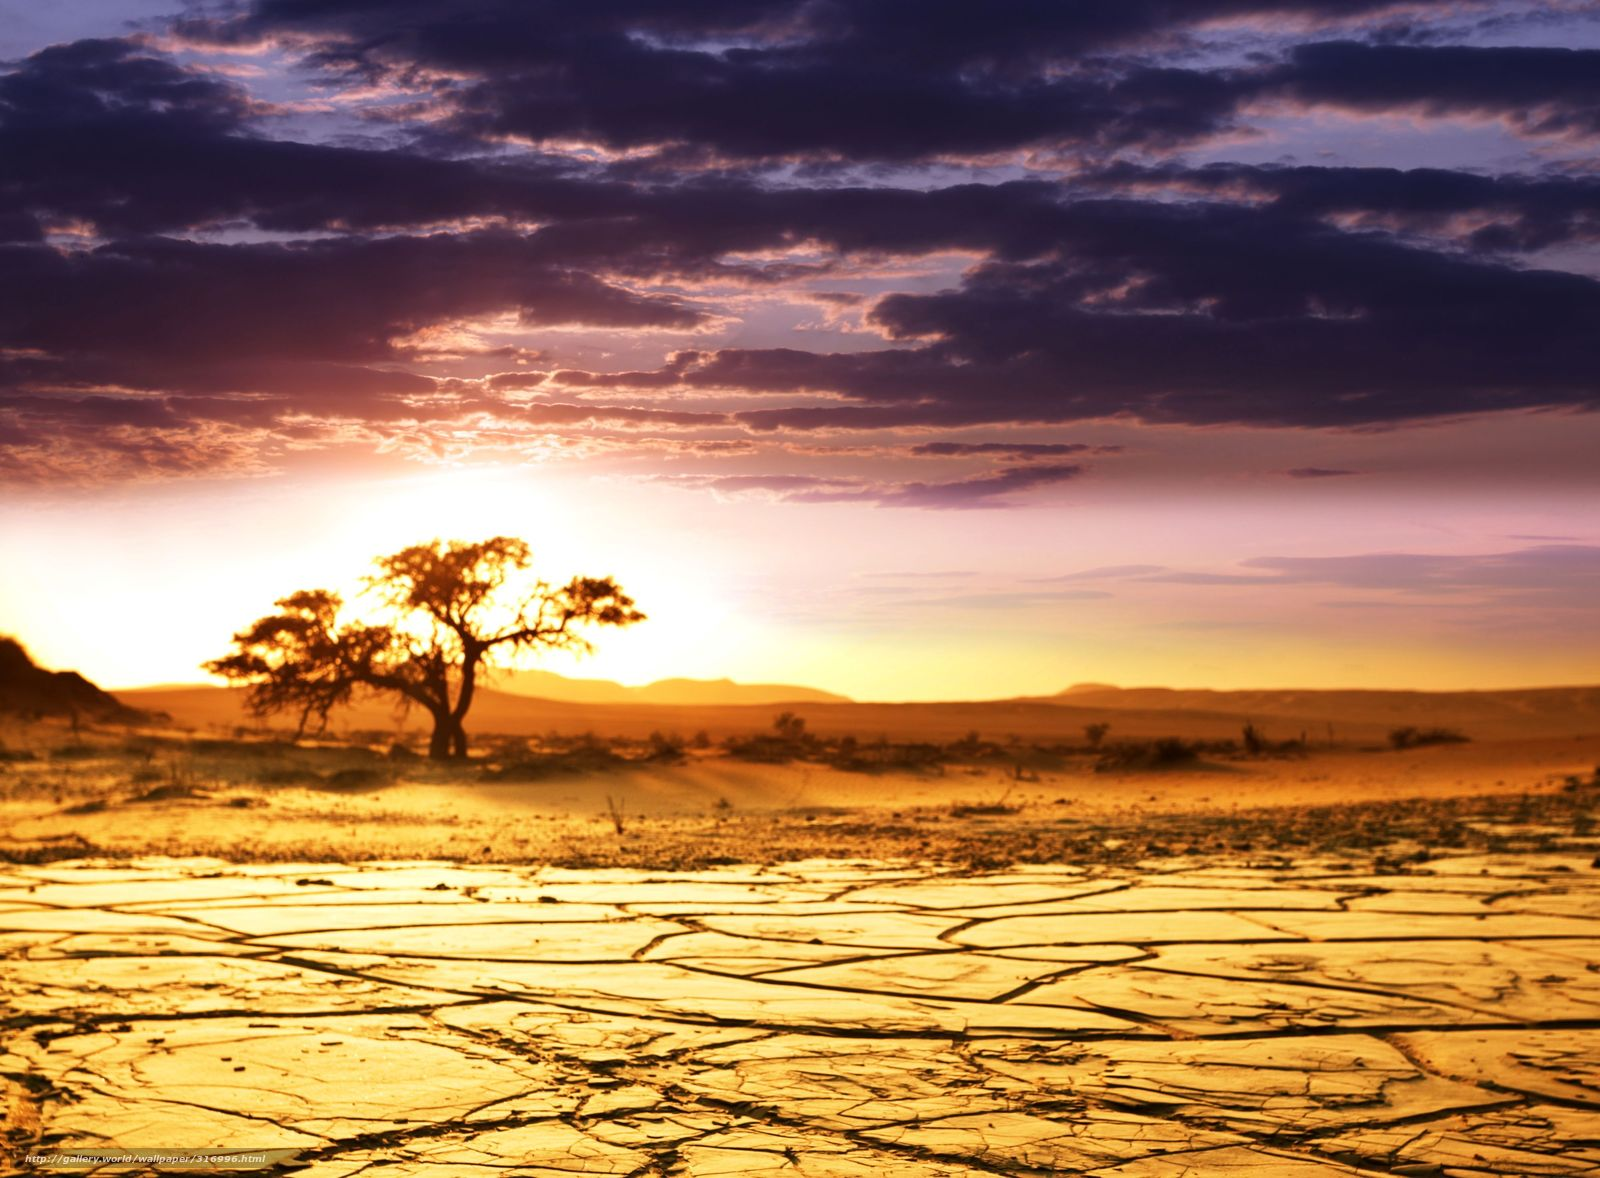 africa wallpaper,sky,natural landscape,nature,sunset,natural environment